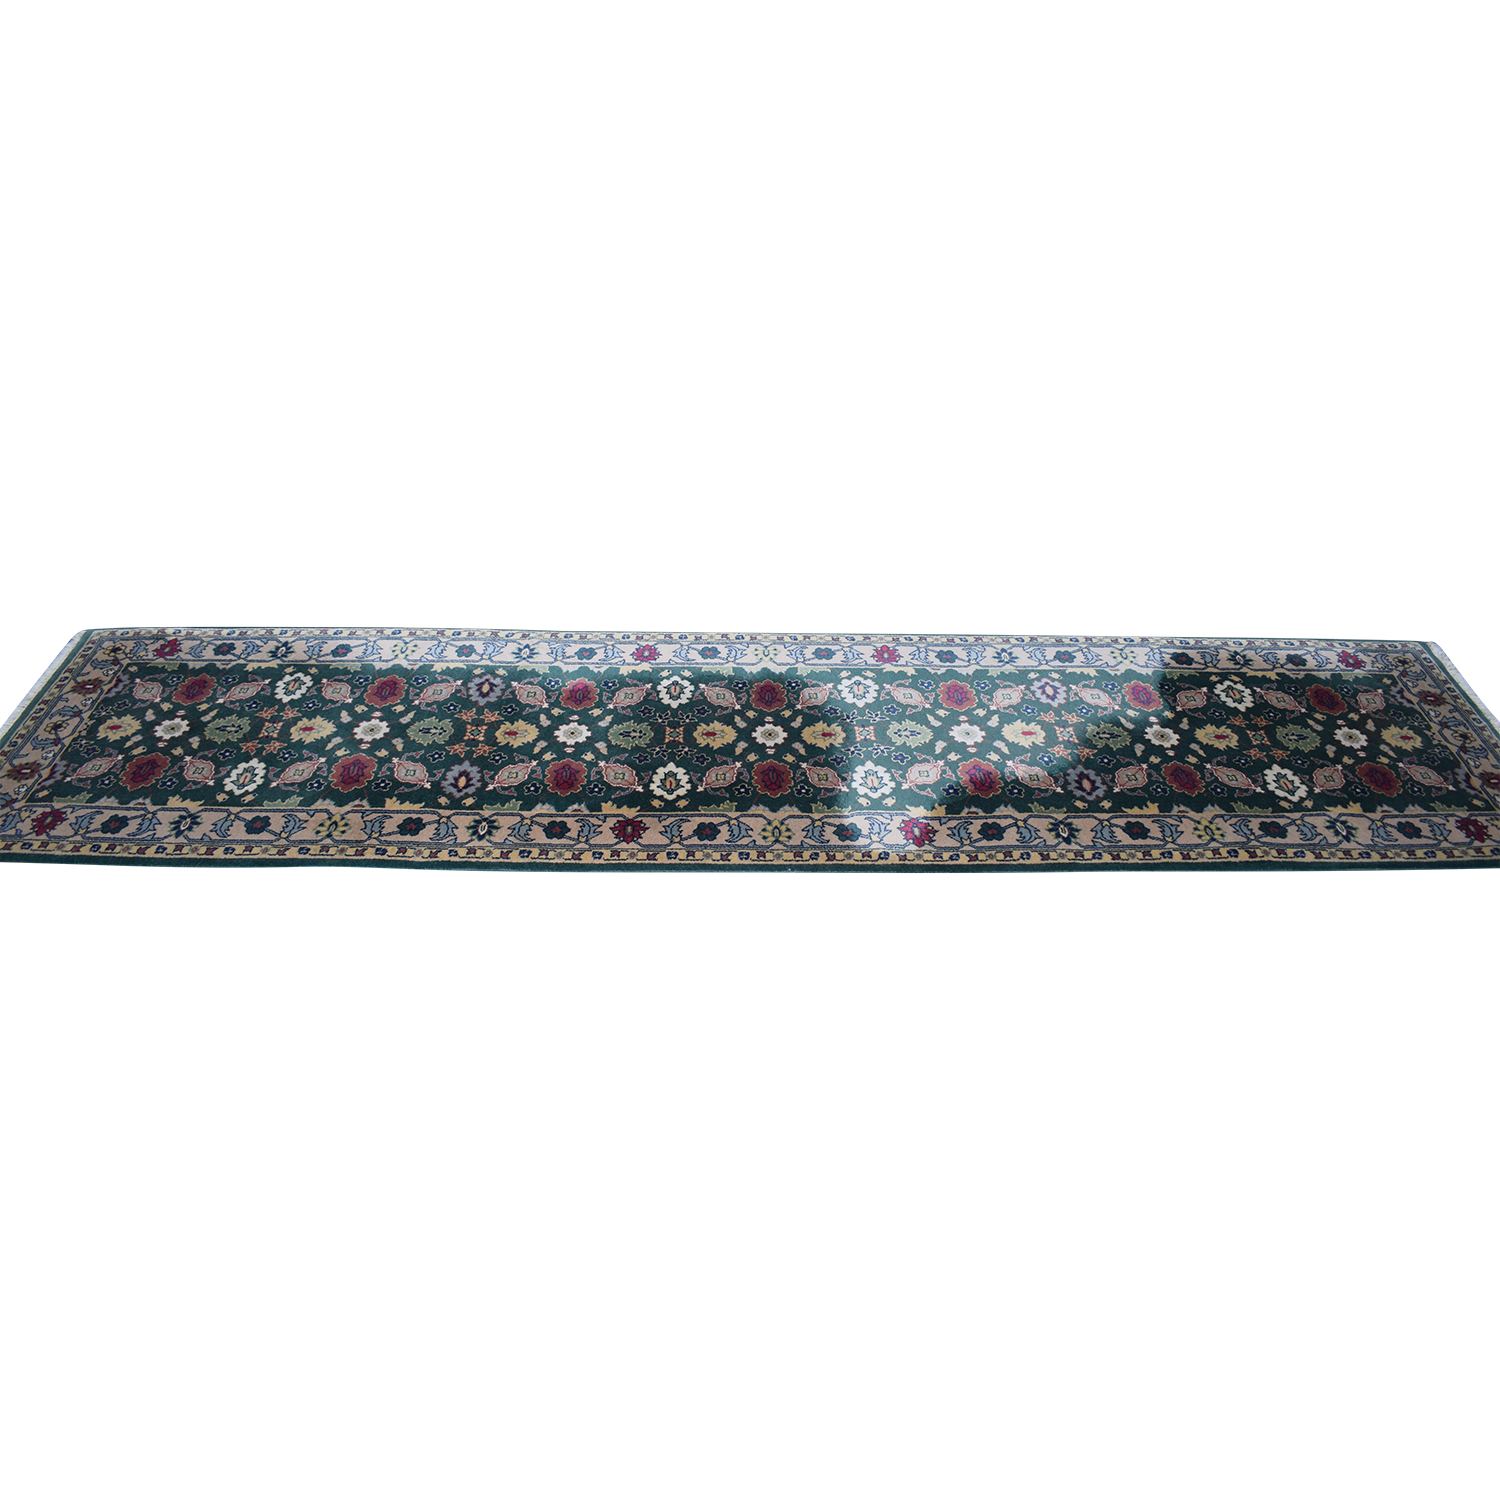 Floral Runner Rug for sale